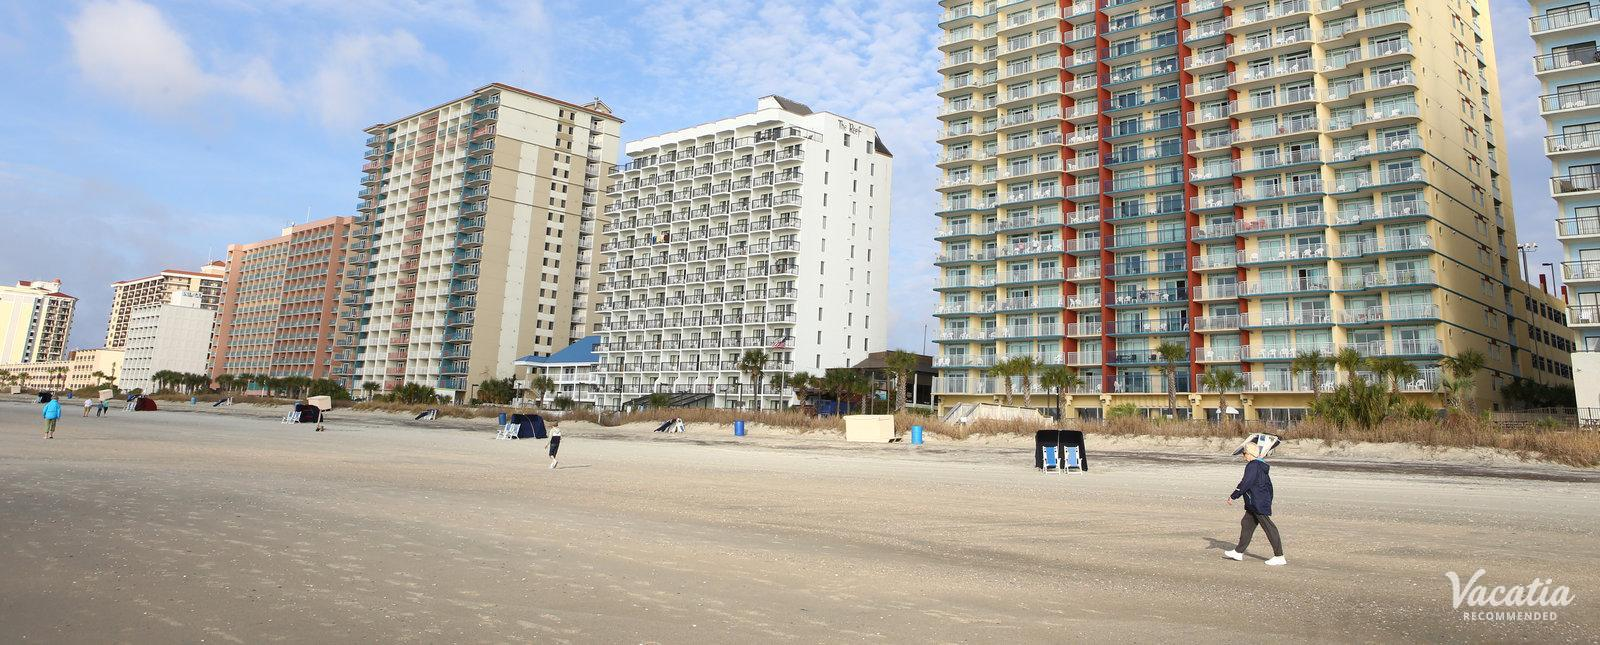 Grand Atlantic Ocean Resort on grand strand beaches